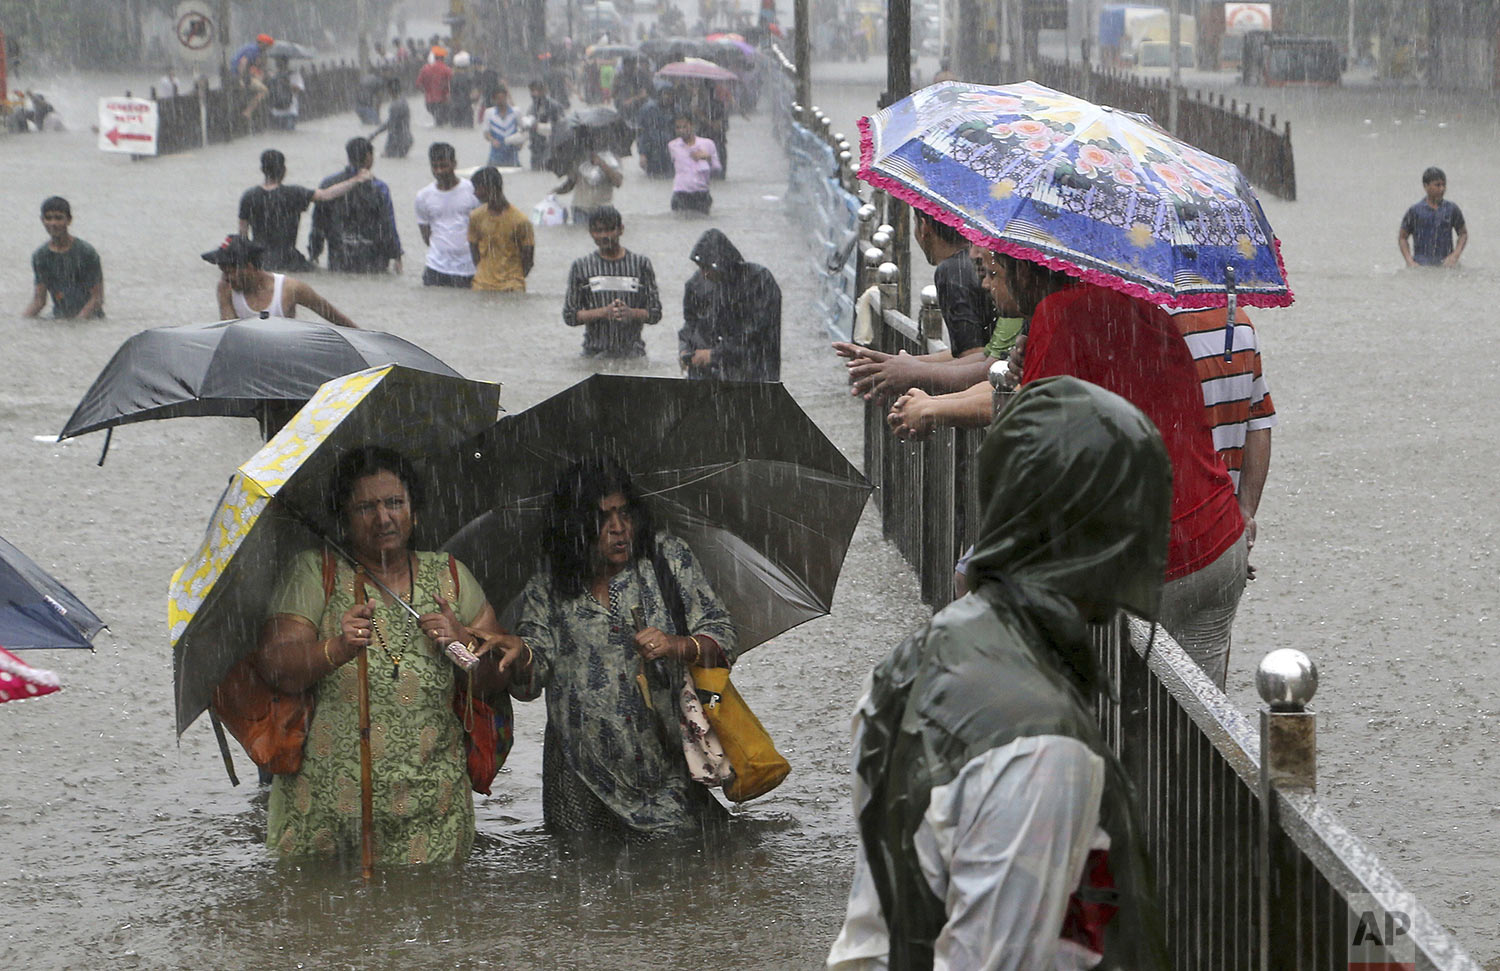 People navigate their way through a flooded street as it rains in Mumbai, India, Wednesday, Sept. 4, 2019. (AP Photo/Rajanish Kakade)